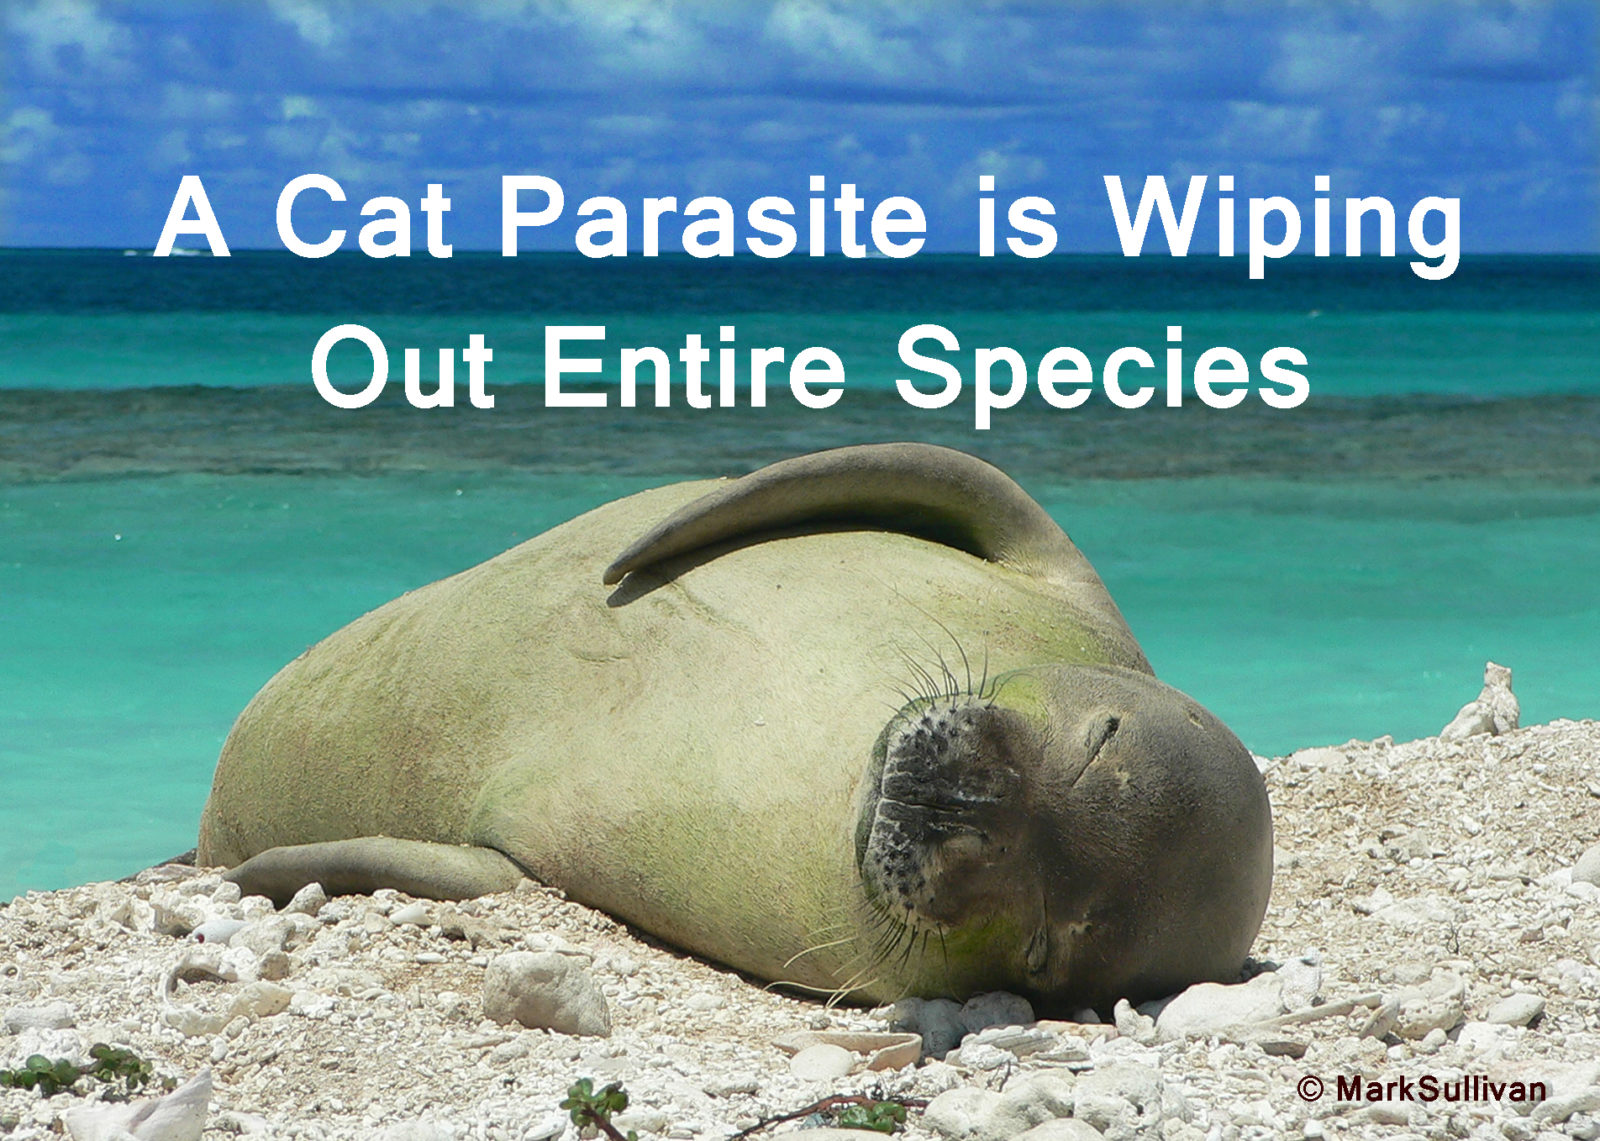 A Cat Parasite Is Wiping Out Entire Species